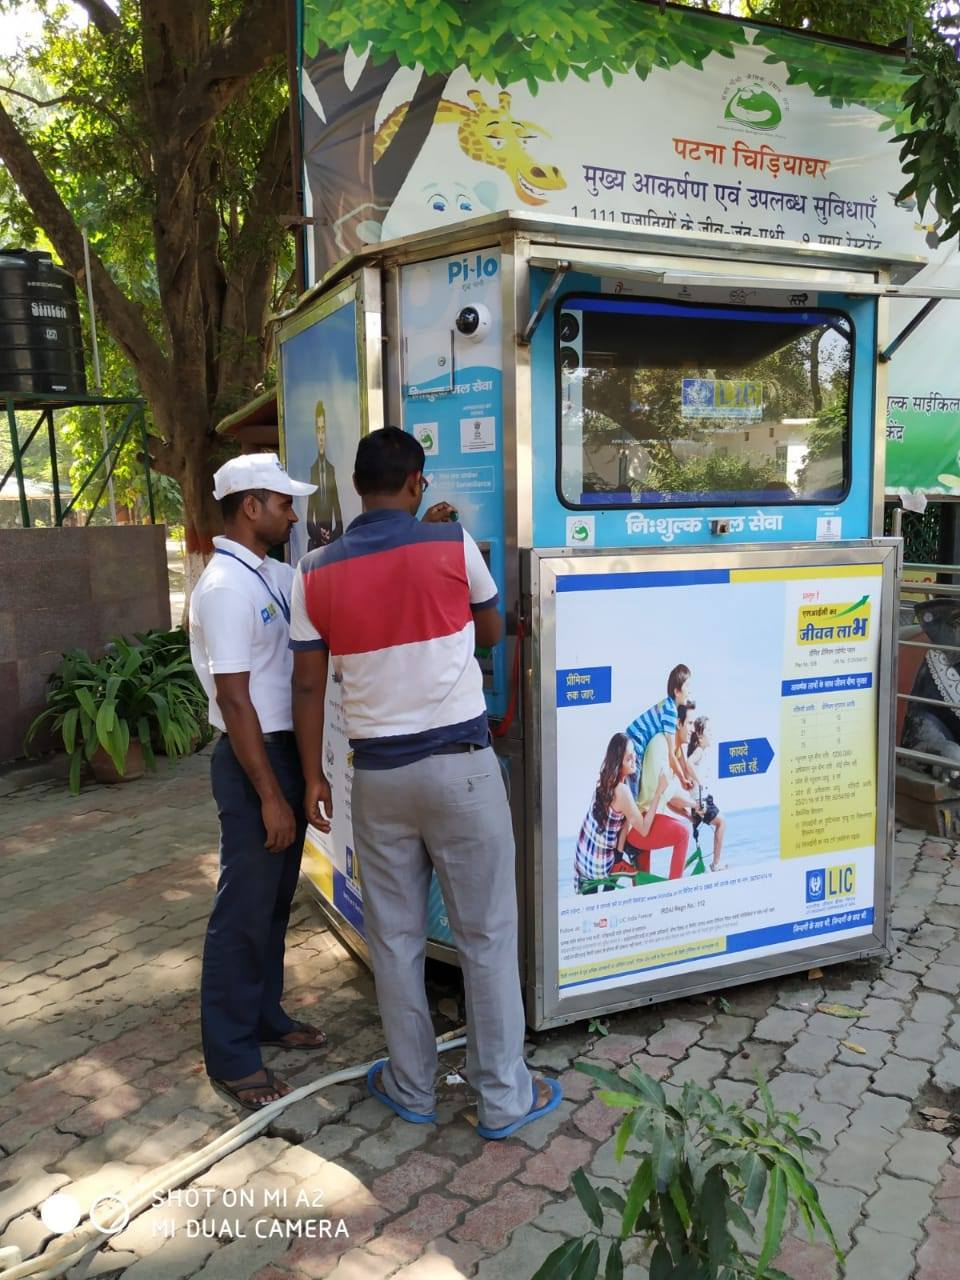 Pi-Lo Water ATM at Patna Zoo